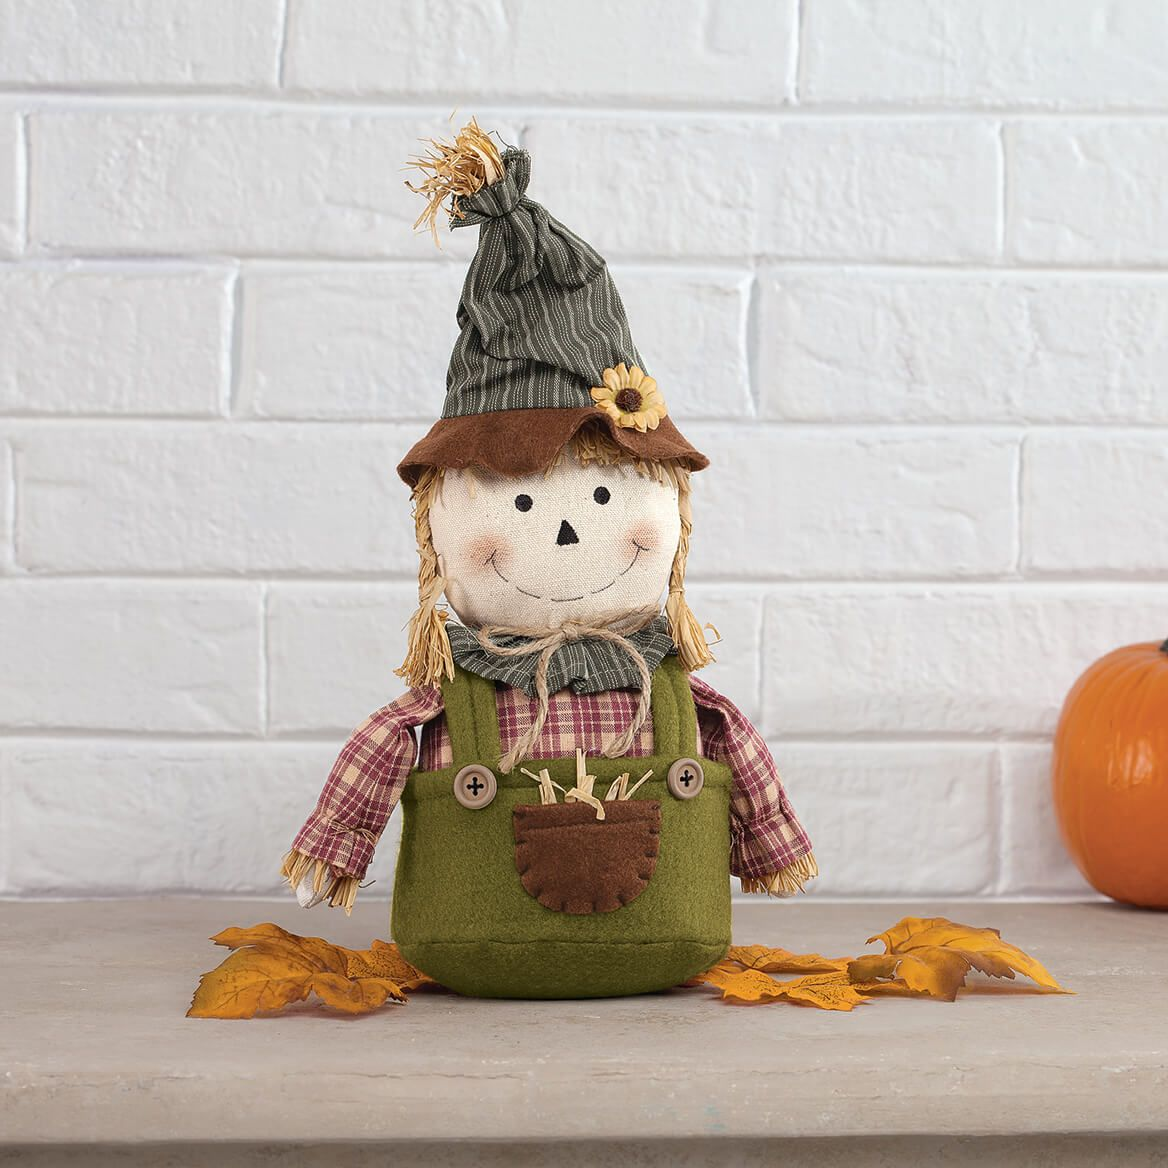 Weighted Scarecrow Shelf Sitter by Holiday Peak™-371964